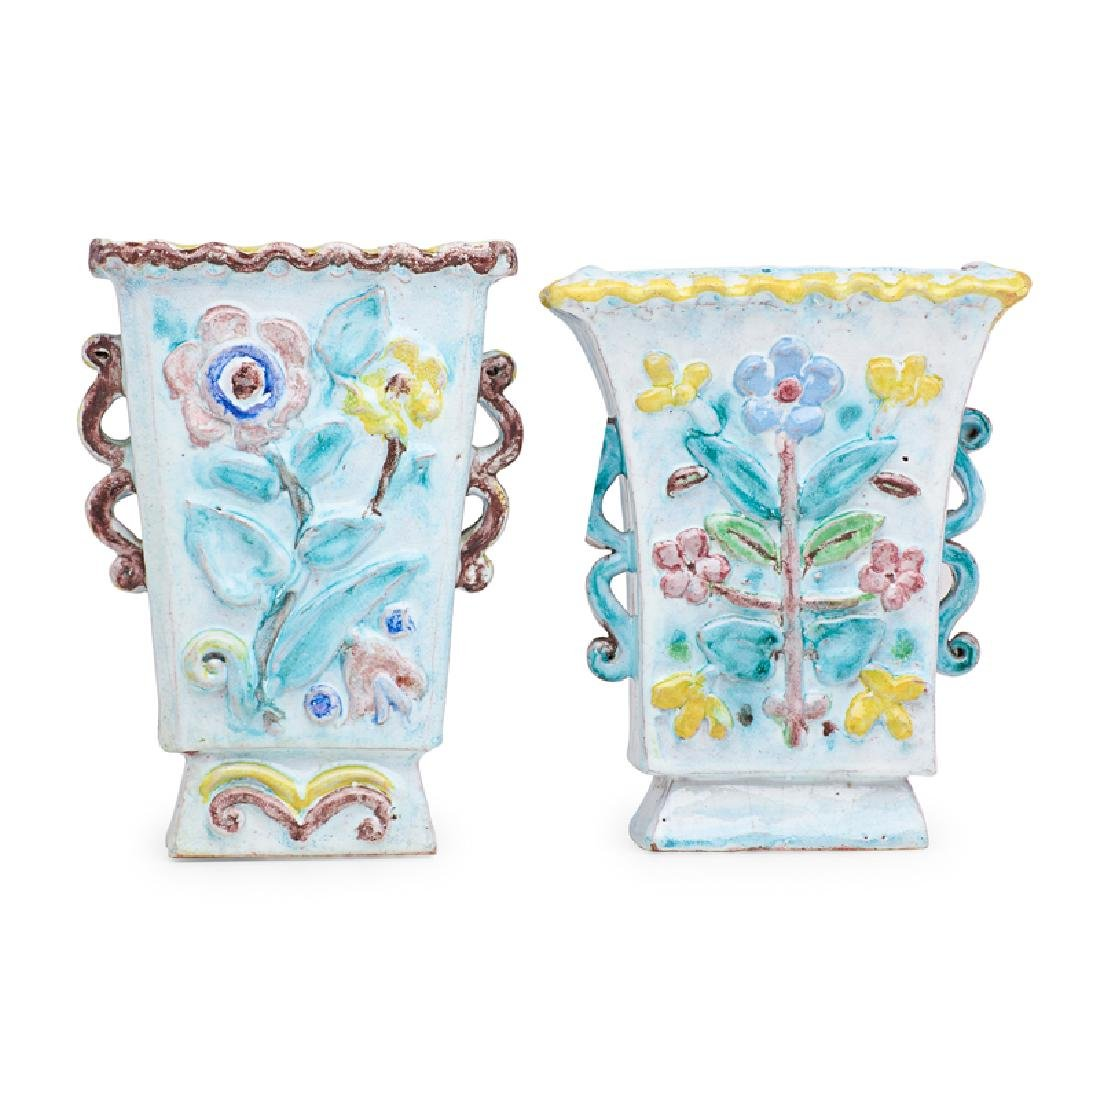 RENE BUTHAUD Two faience vases - 2